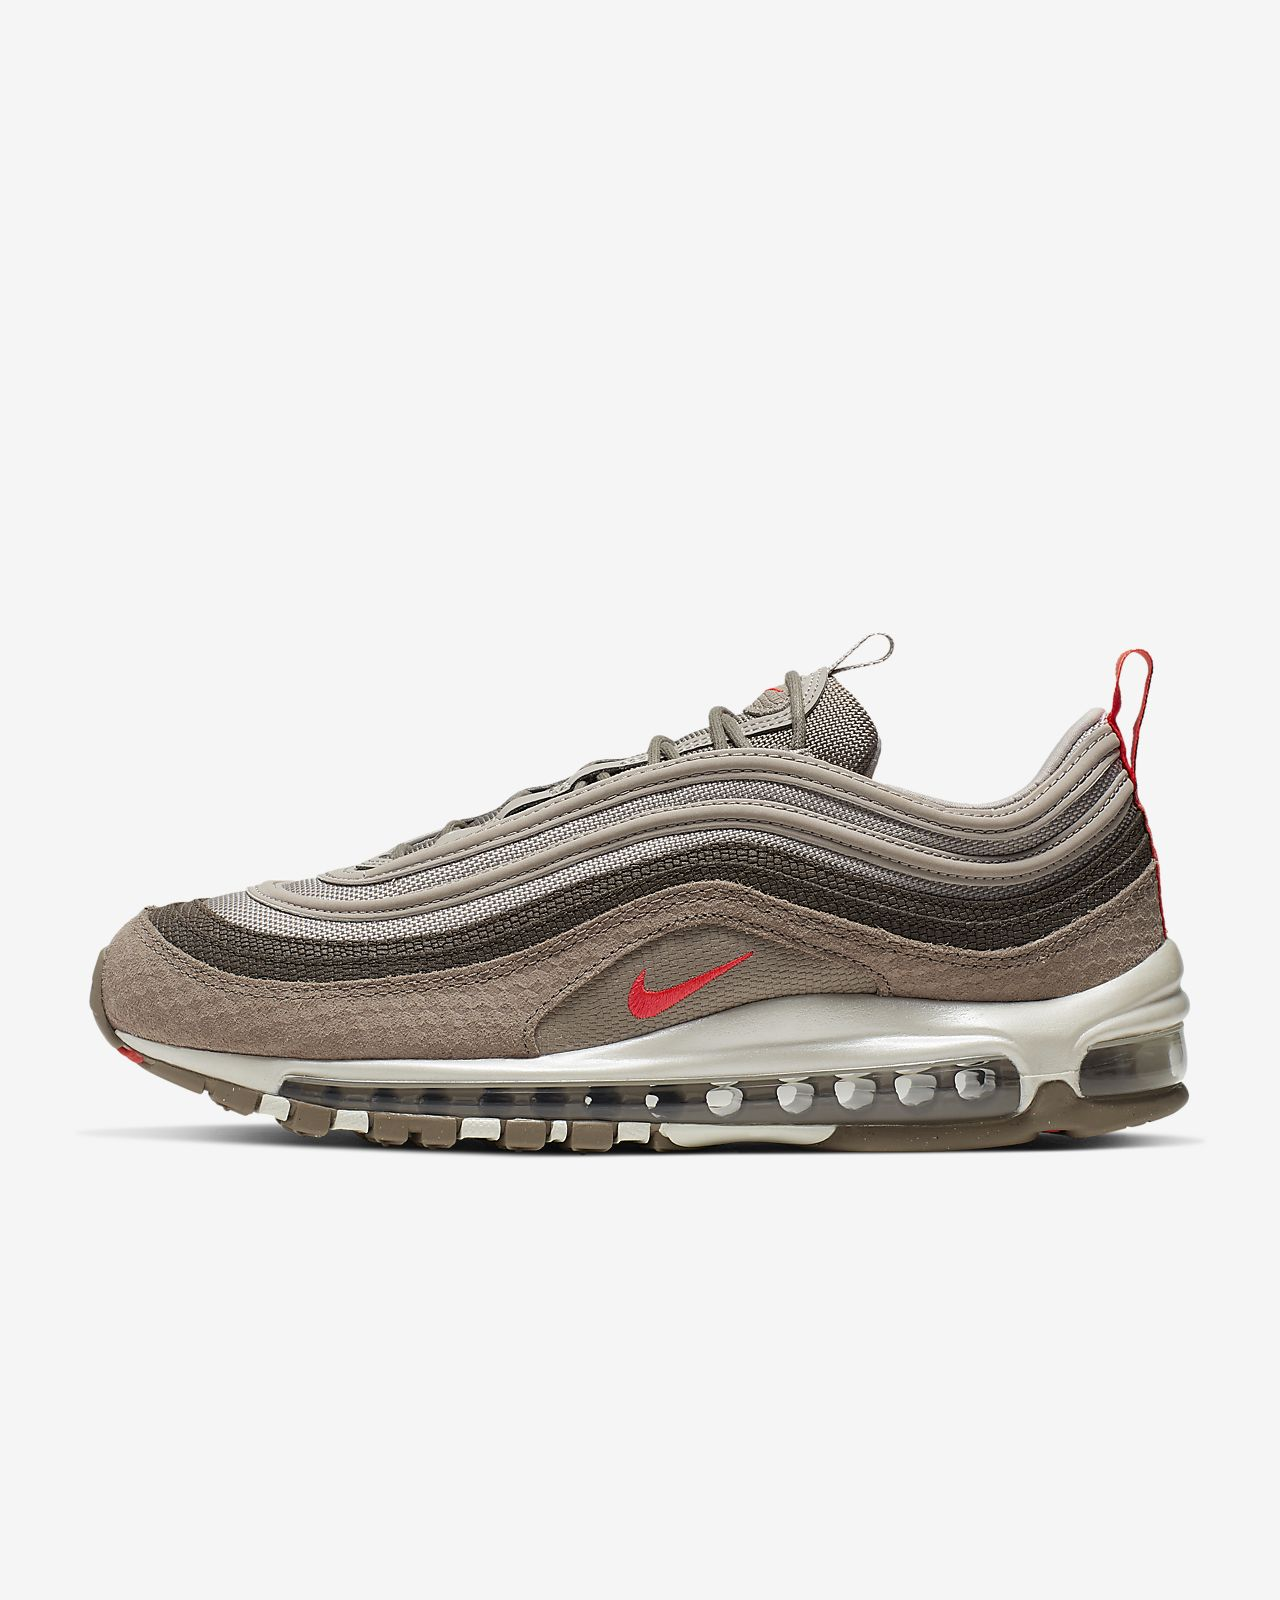 576e0868 Nike Air Max 97 Premium Men's Shoe